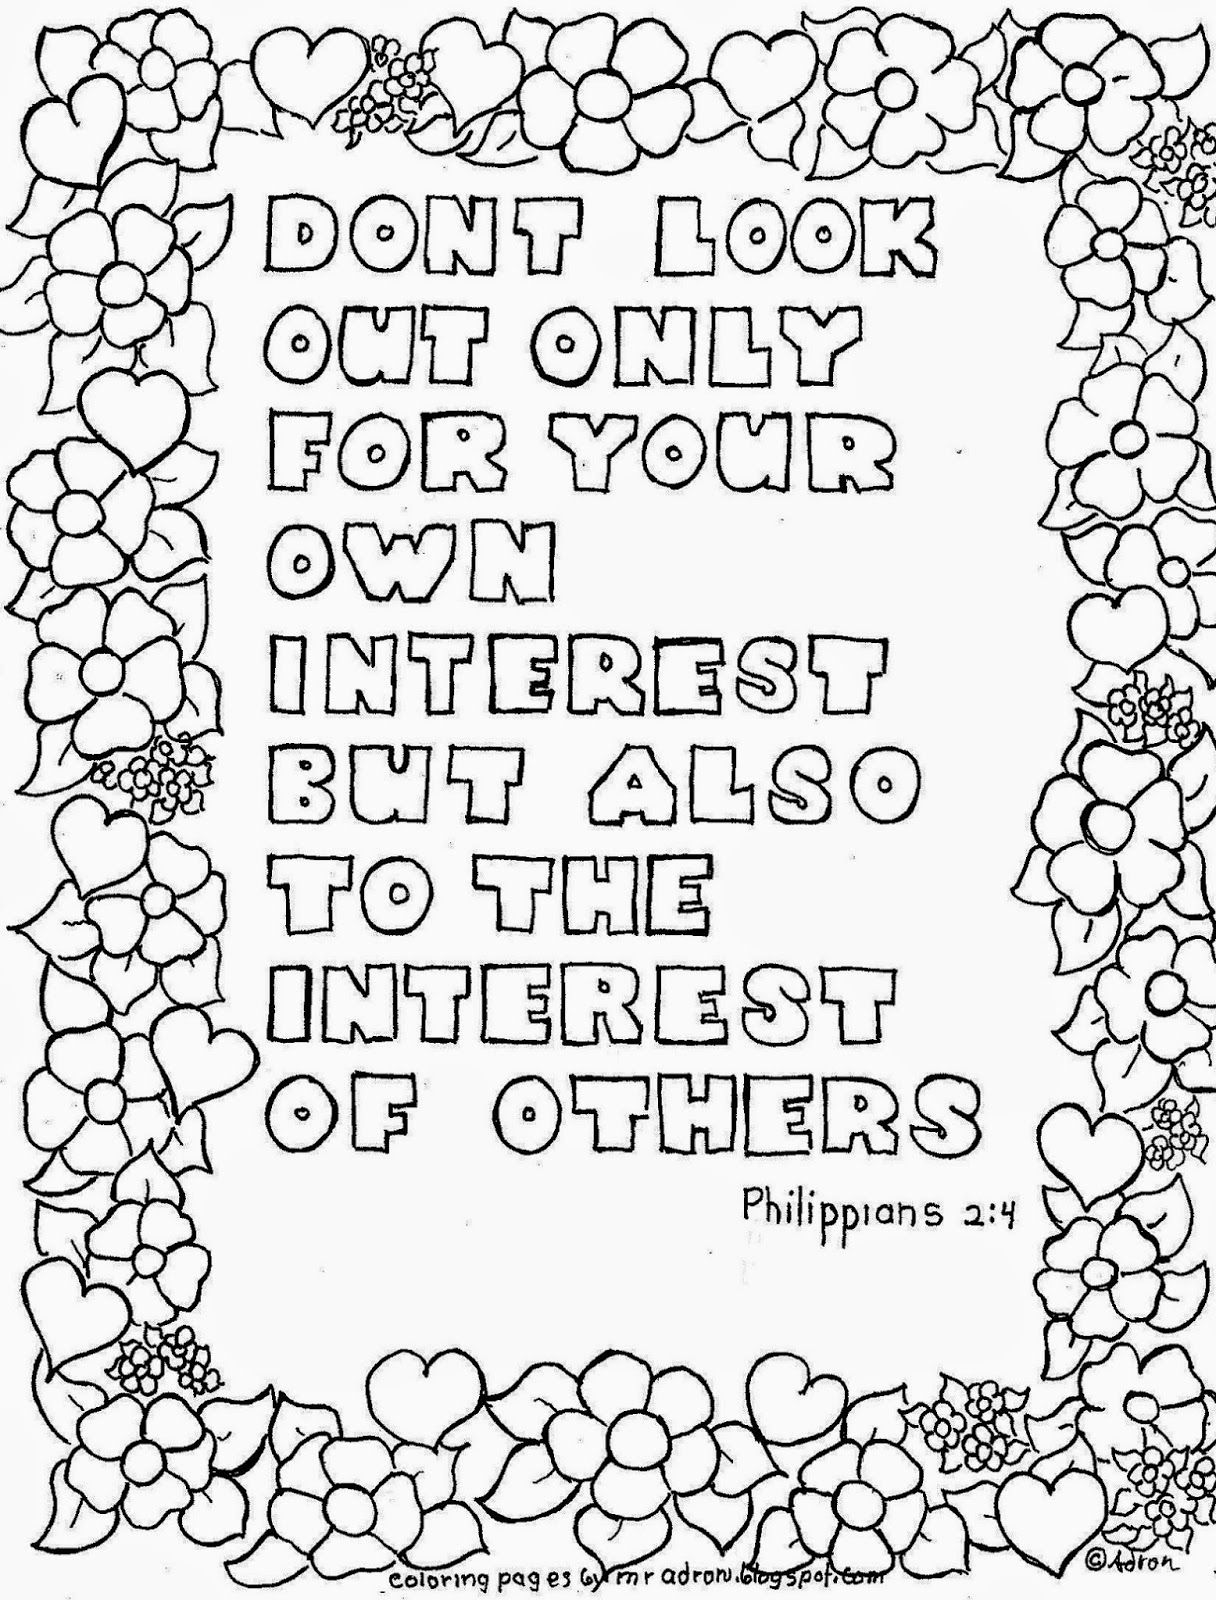 A Free Coloring Page For Kids See More At My Blog Coloringpagesbymradronblogspot